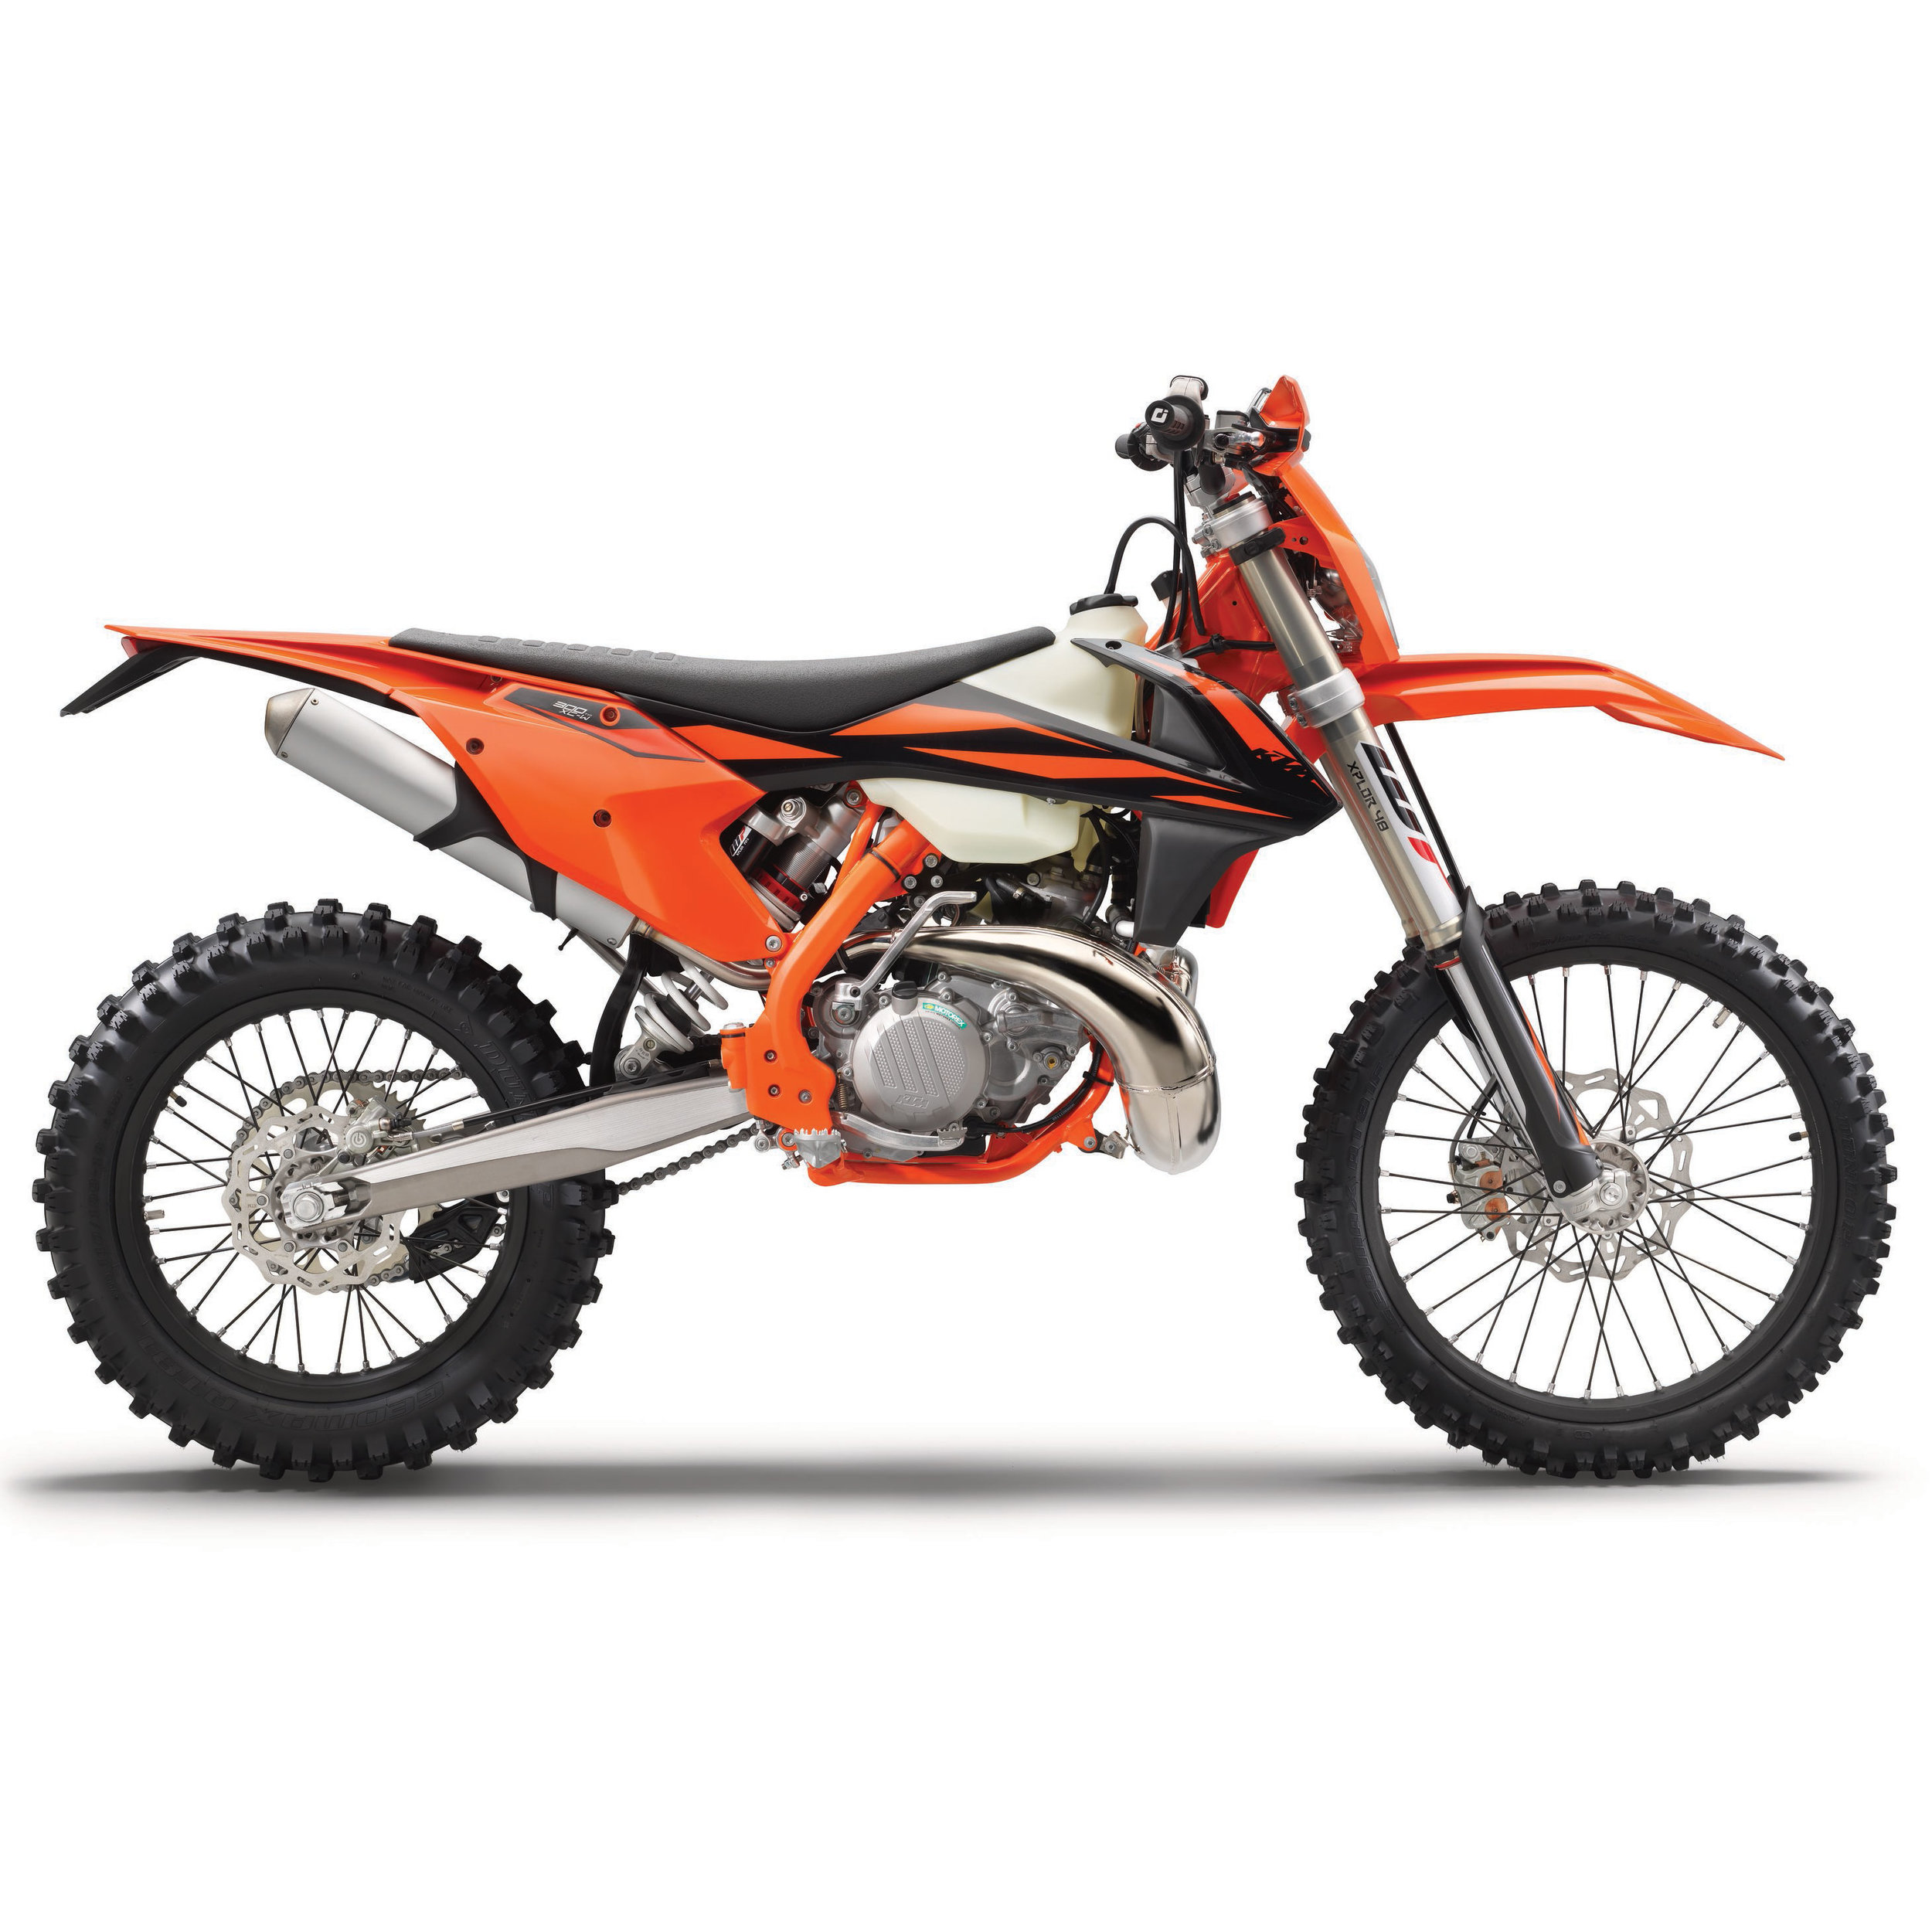 2019 Ktm Off Road Motorcycles First Look Keefer Inc Testing 300 Starter Wiring Diagram